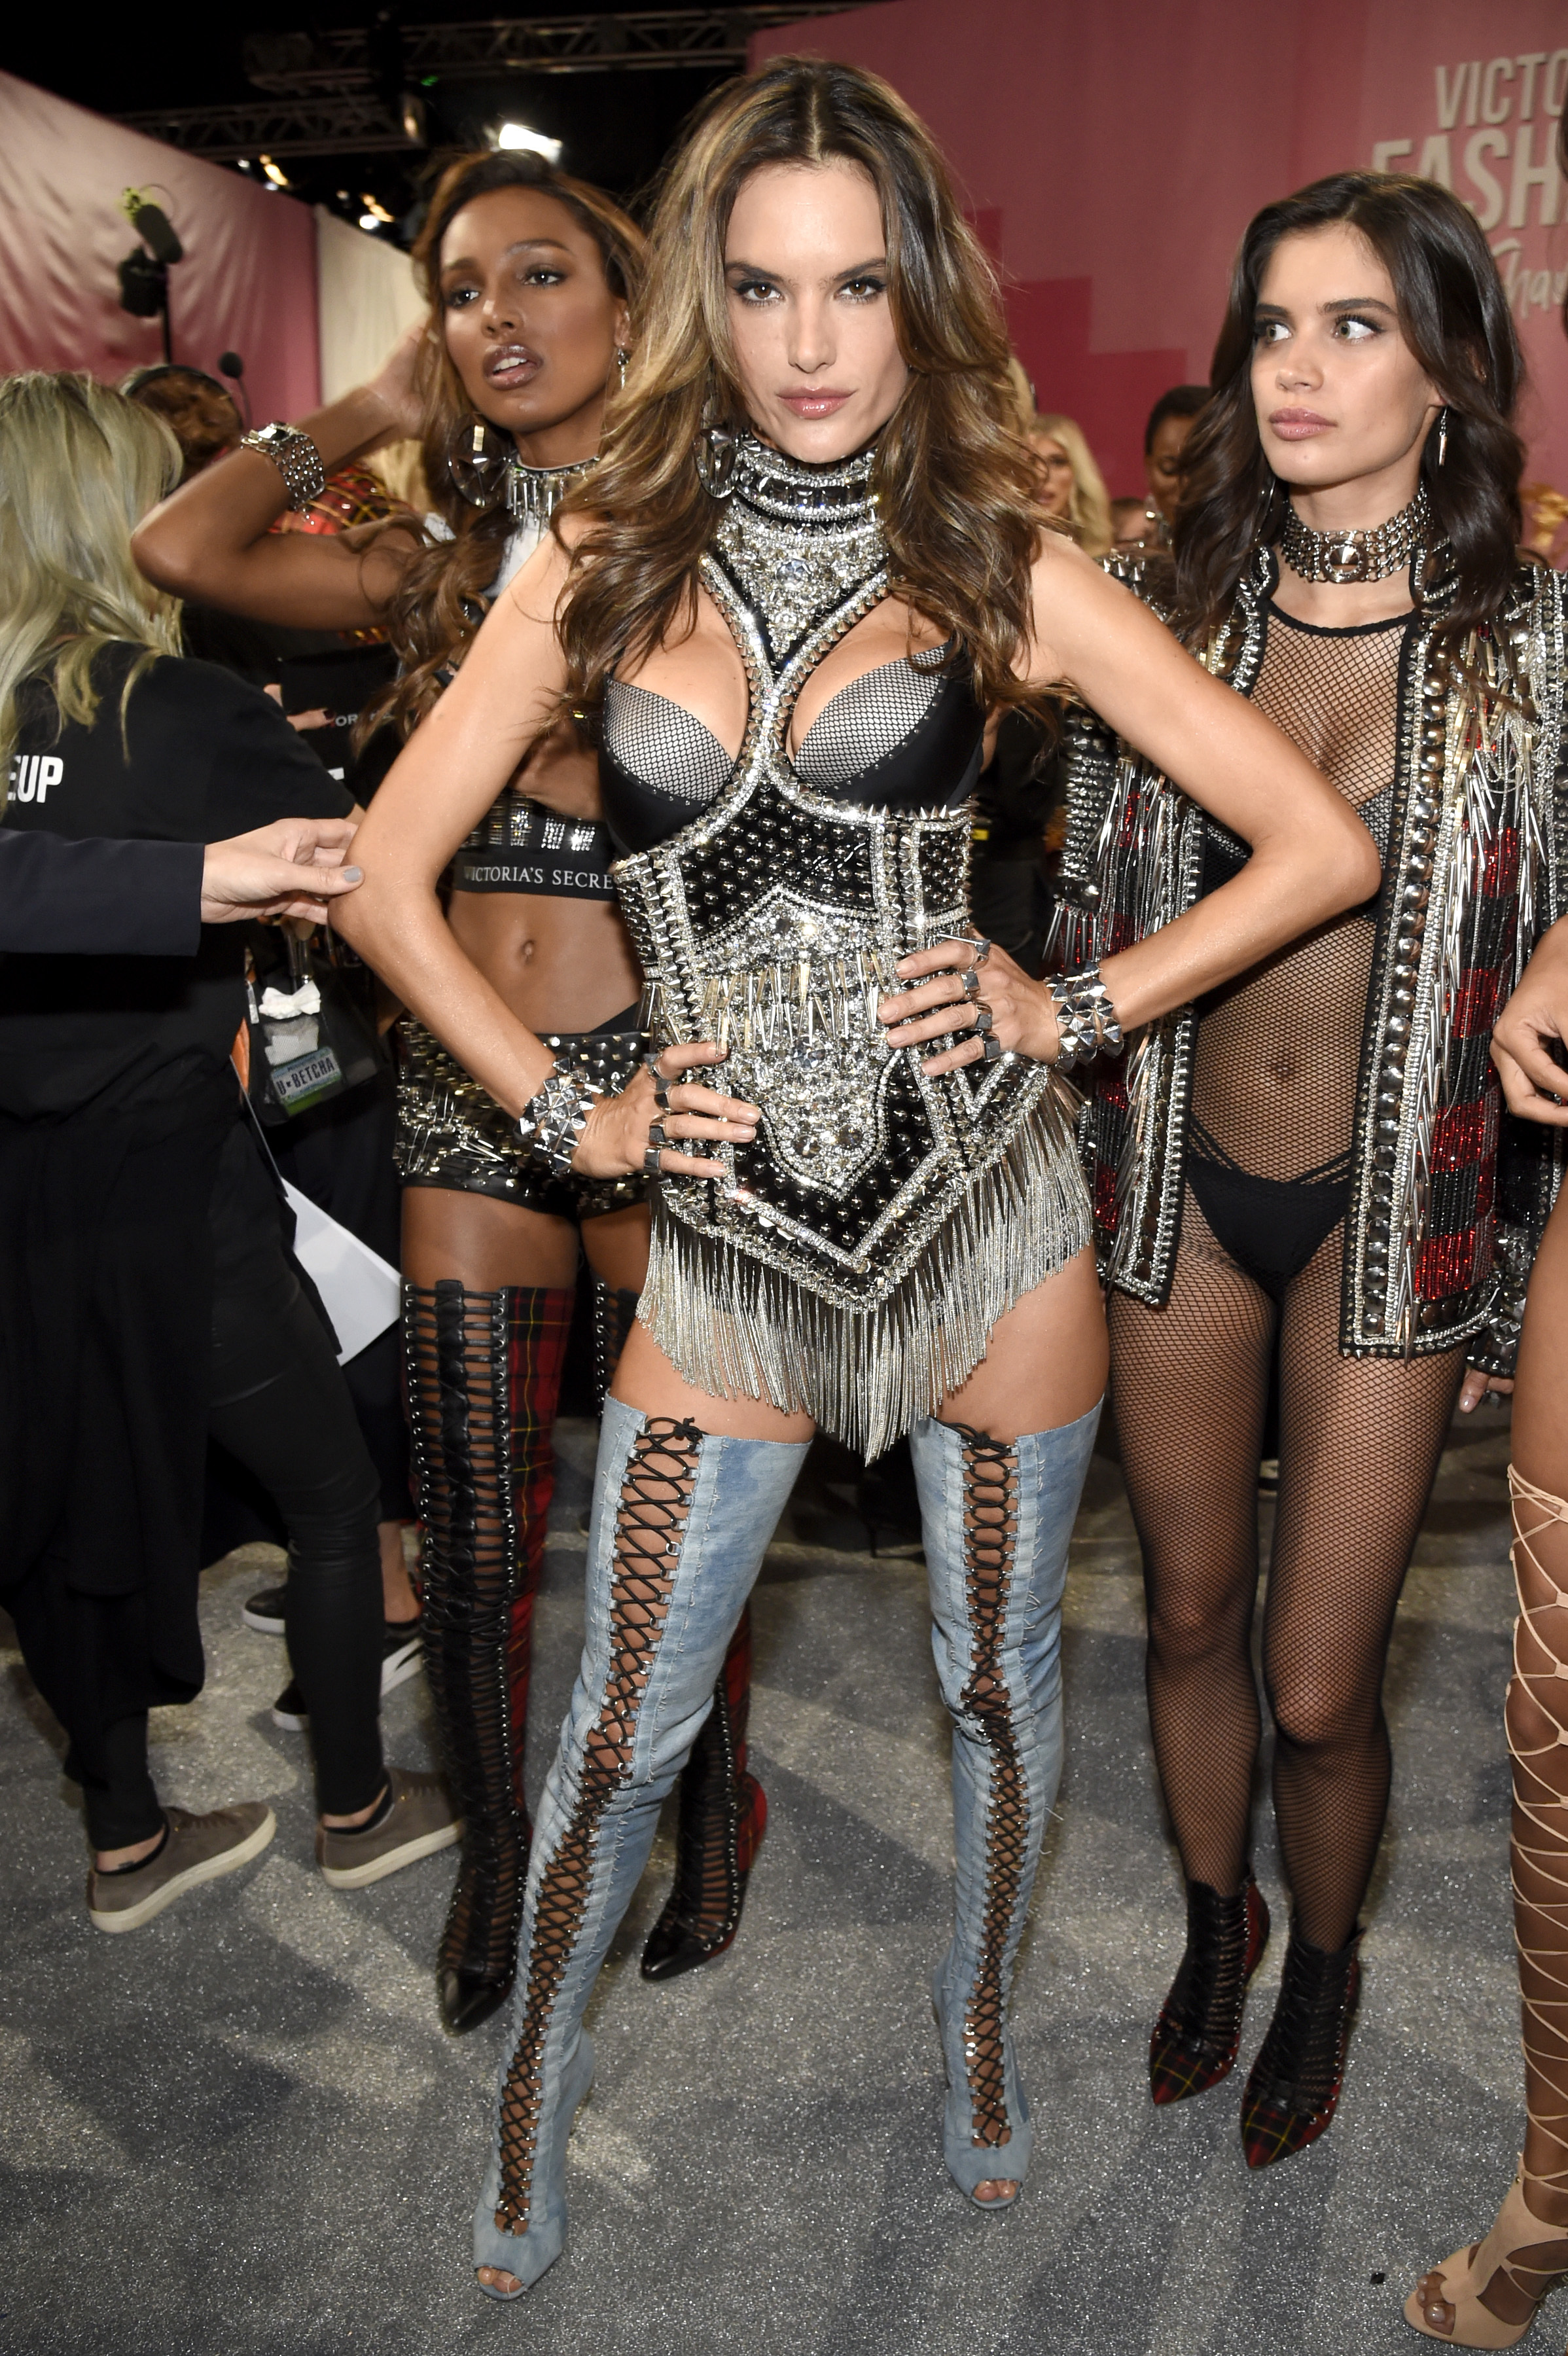 Alessandra Ambrosio poses backstage at the Victoria's Secret Fashion Show in Shanghai, China, on Nov. 20, 2017.